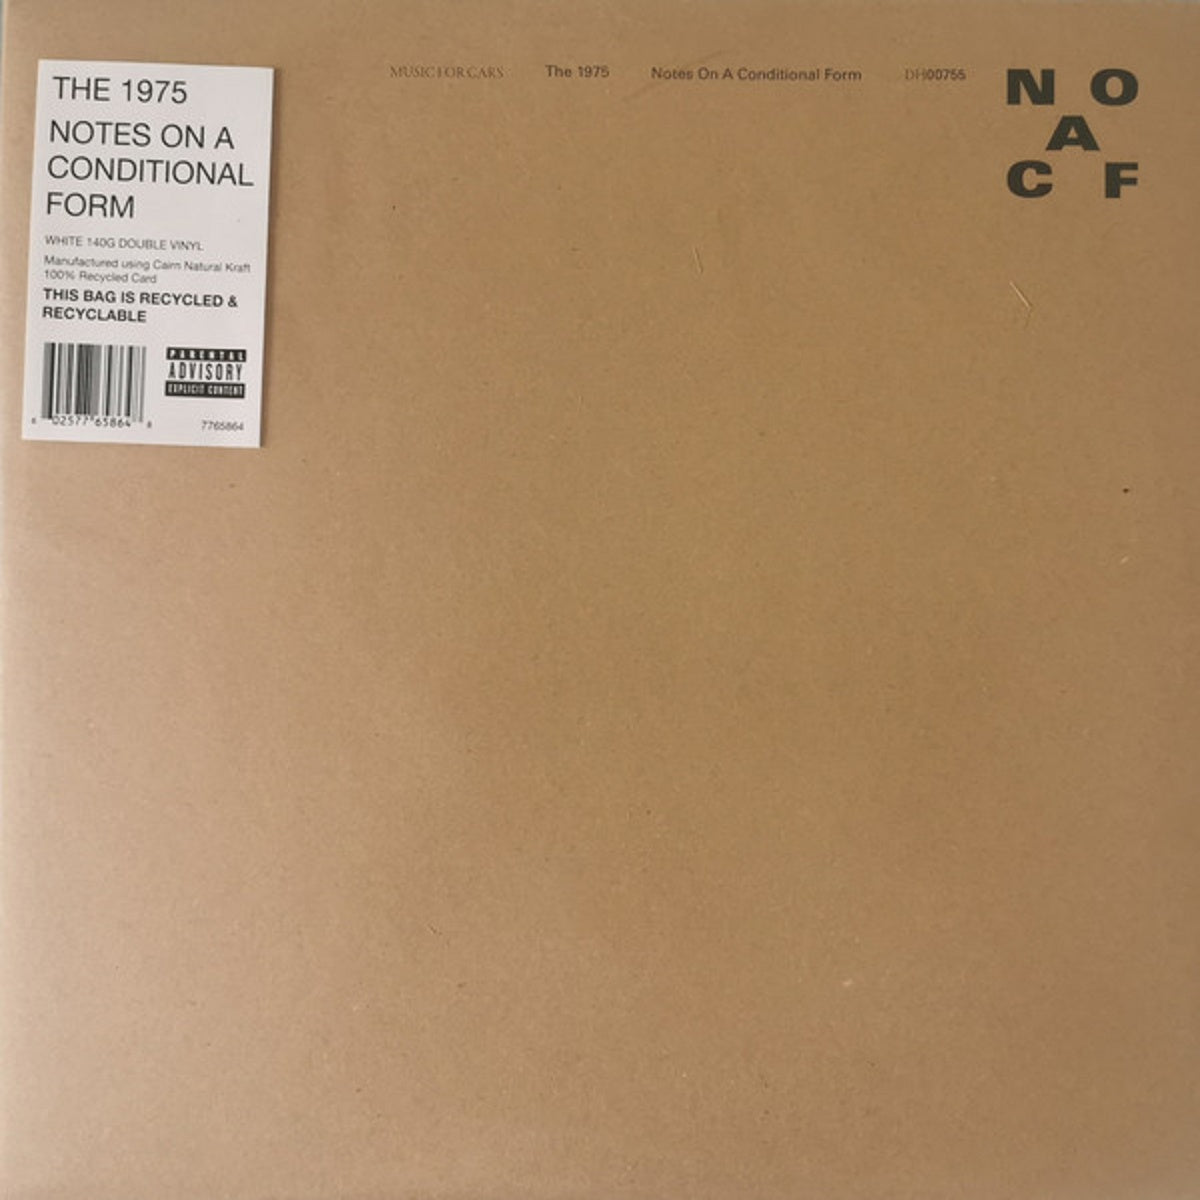 The 1975 - Notes On A Conditional Form - BROKEN 8 RECORDS